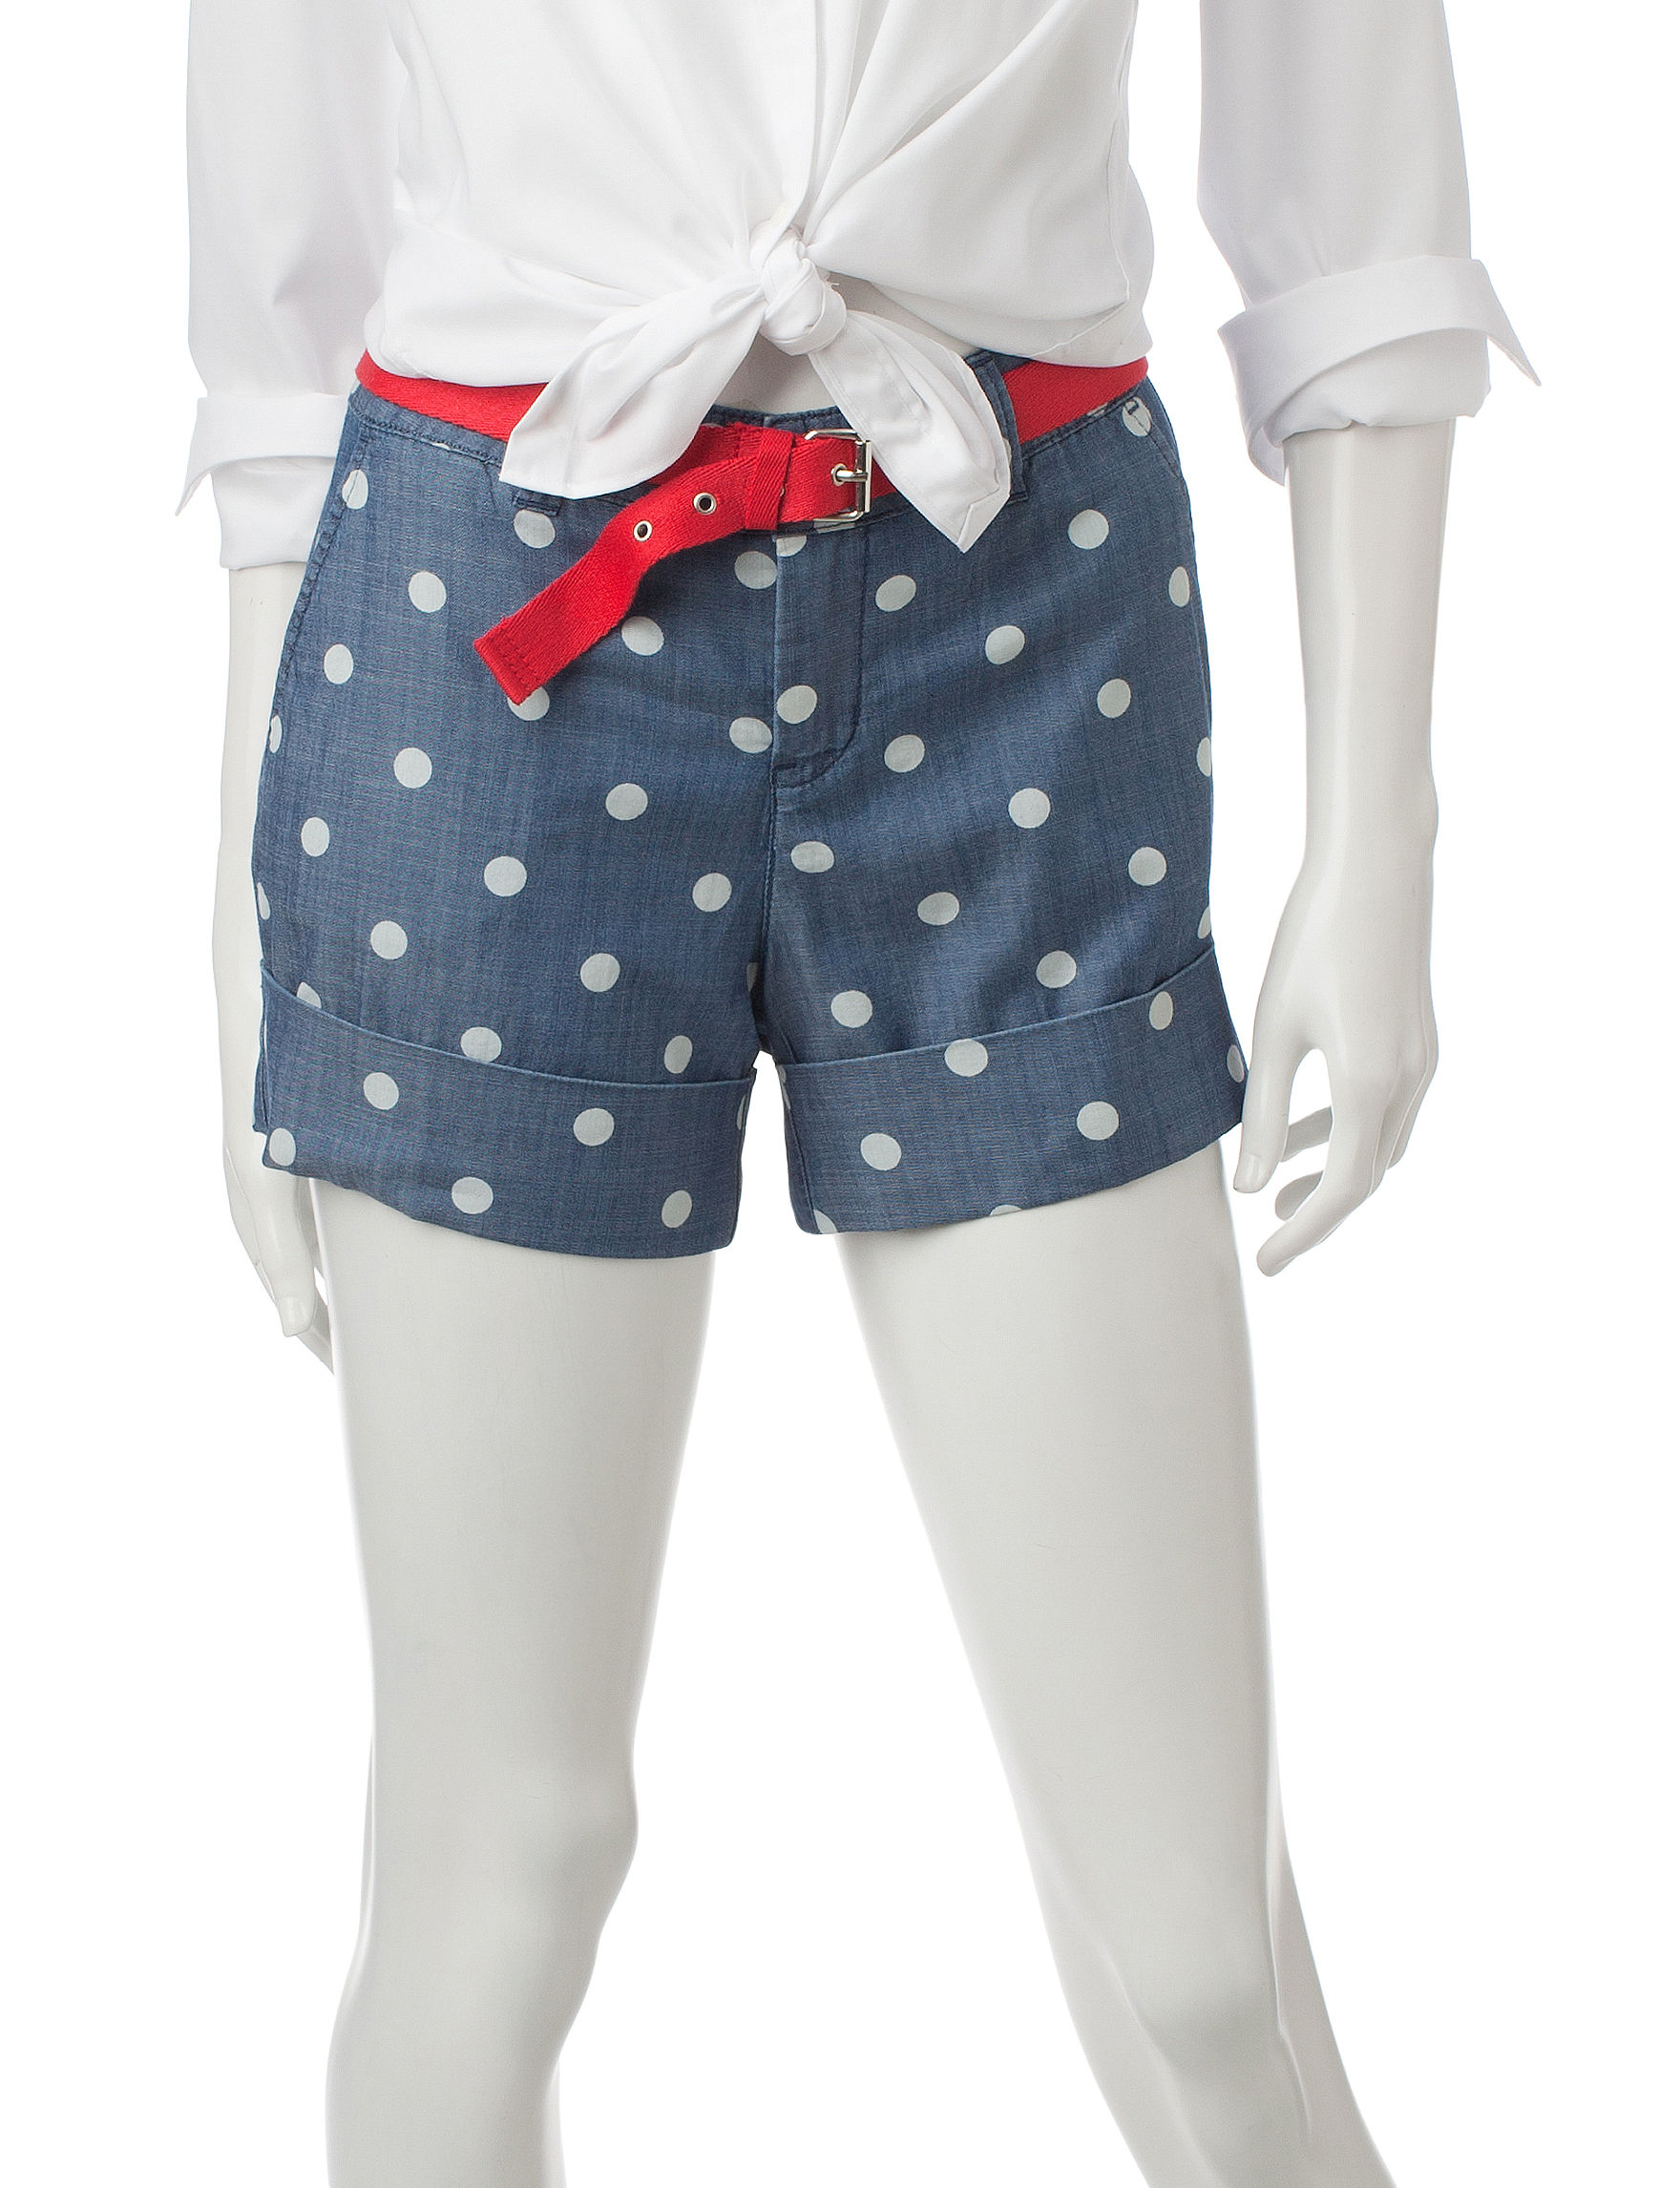 U.S. Polo Assn. Blue Tailored Shorts